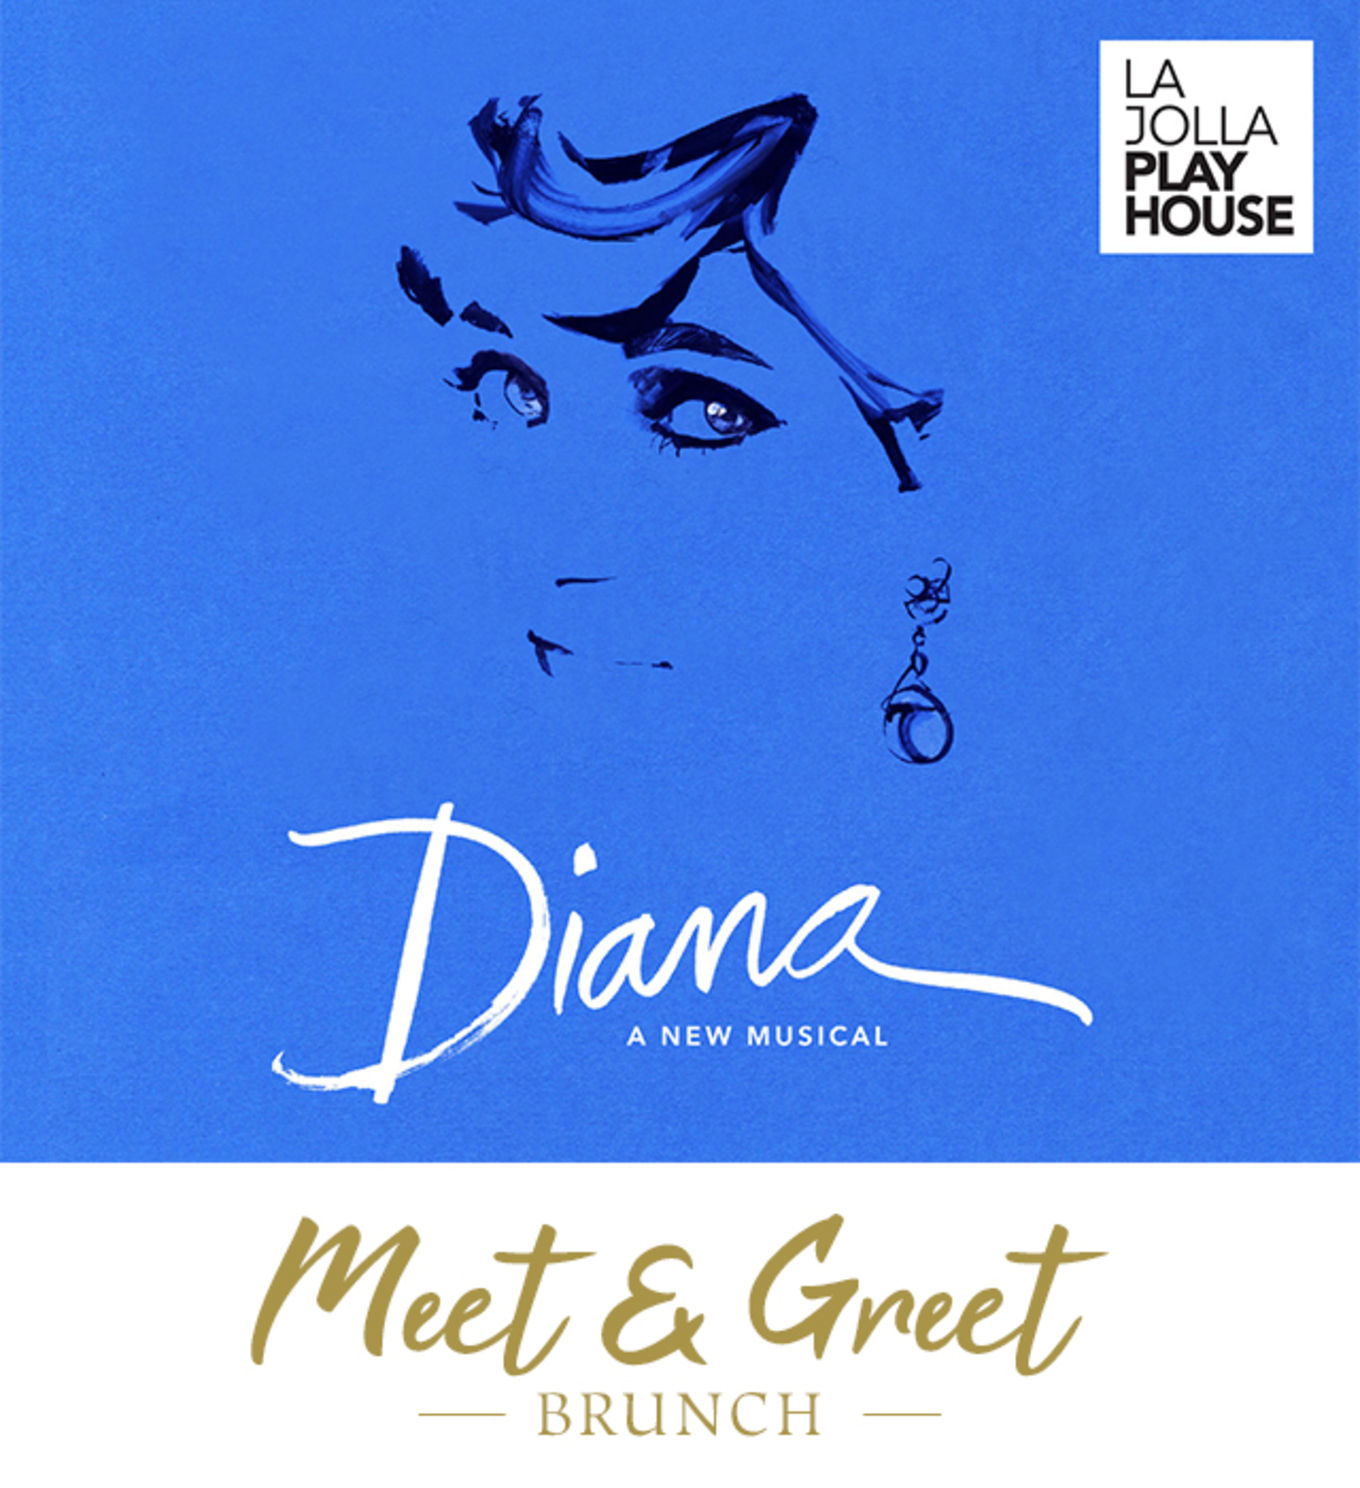 Brunch Meet and Greet - Tickets - The Lodge at Torrey Pines, La